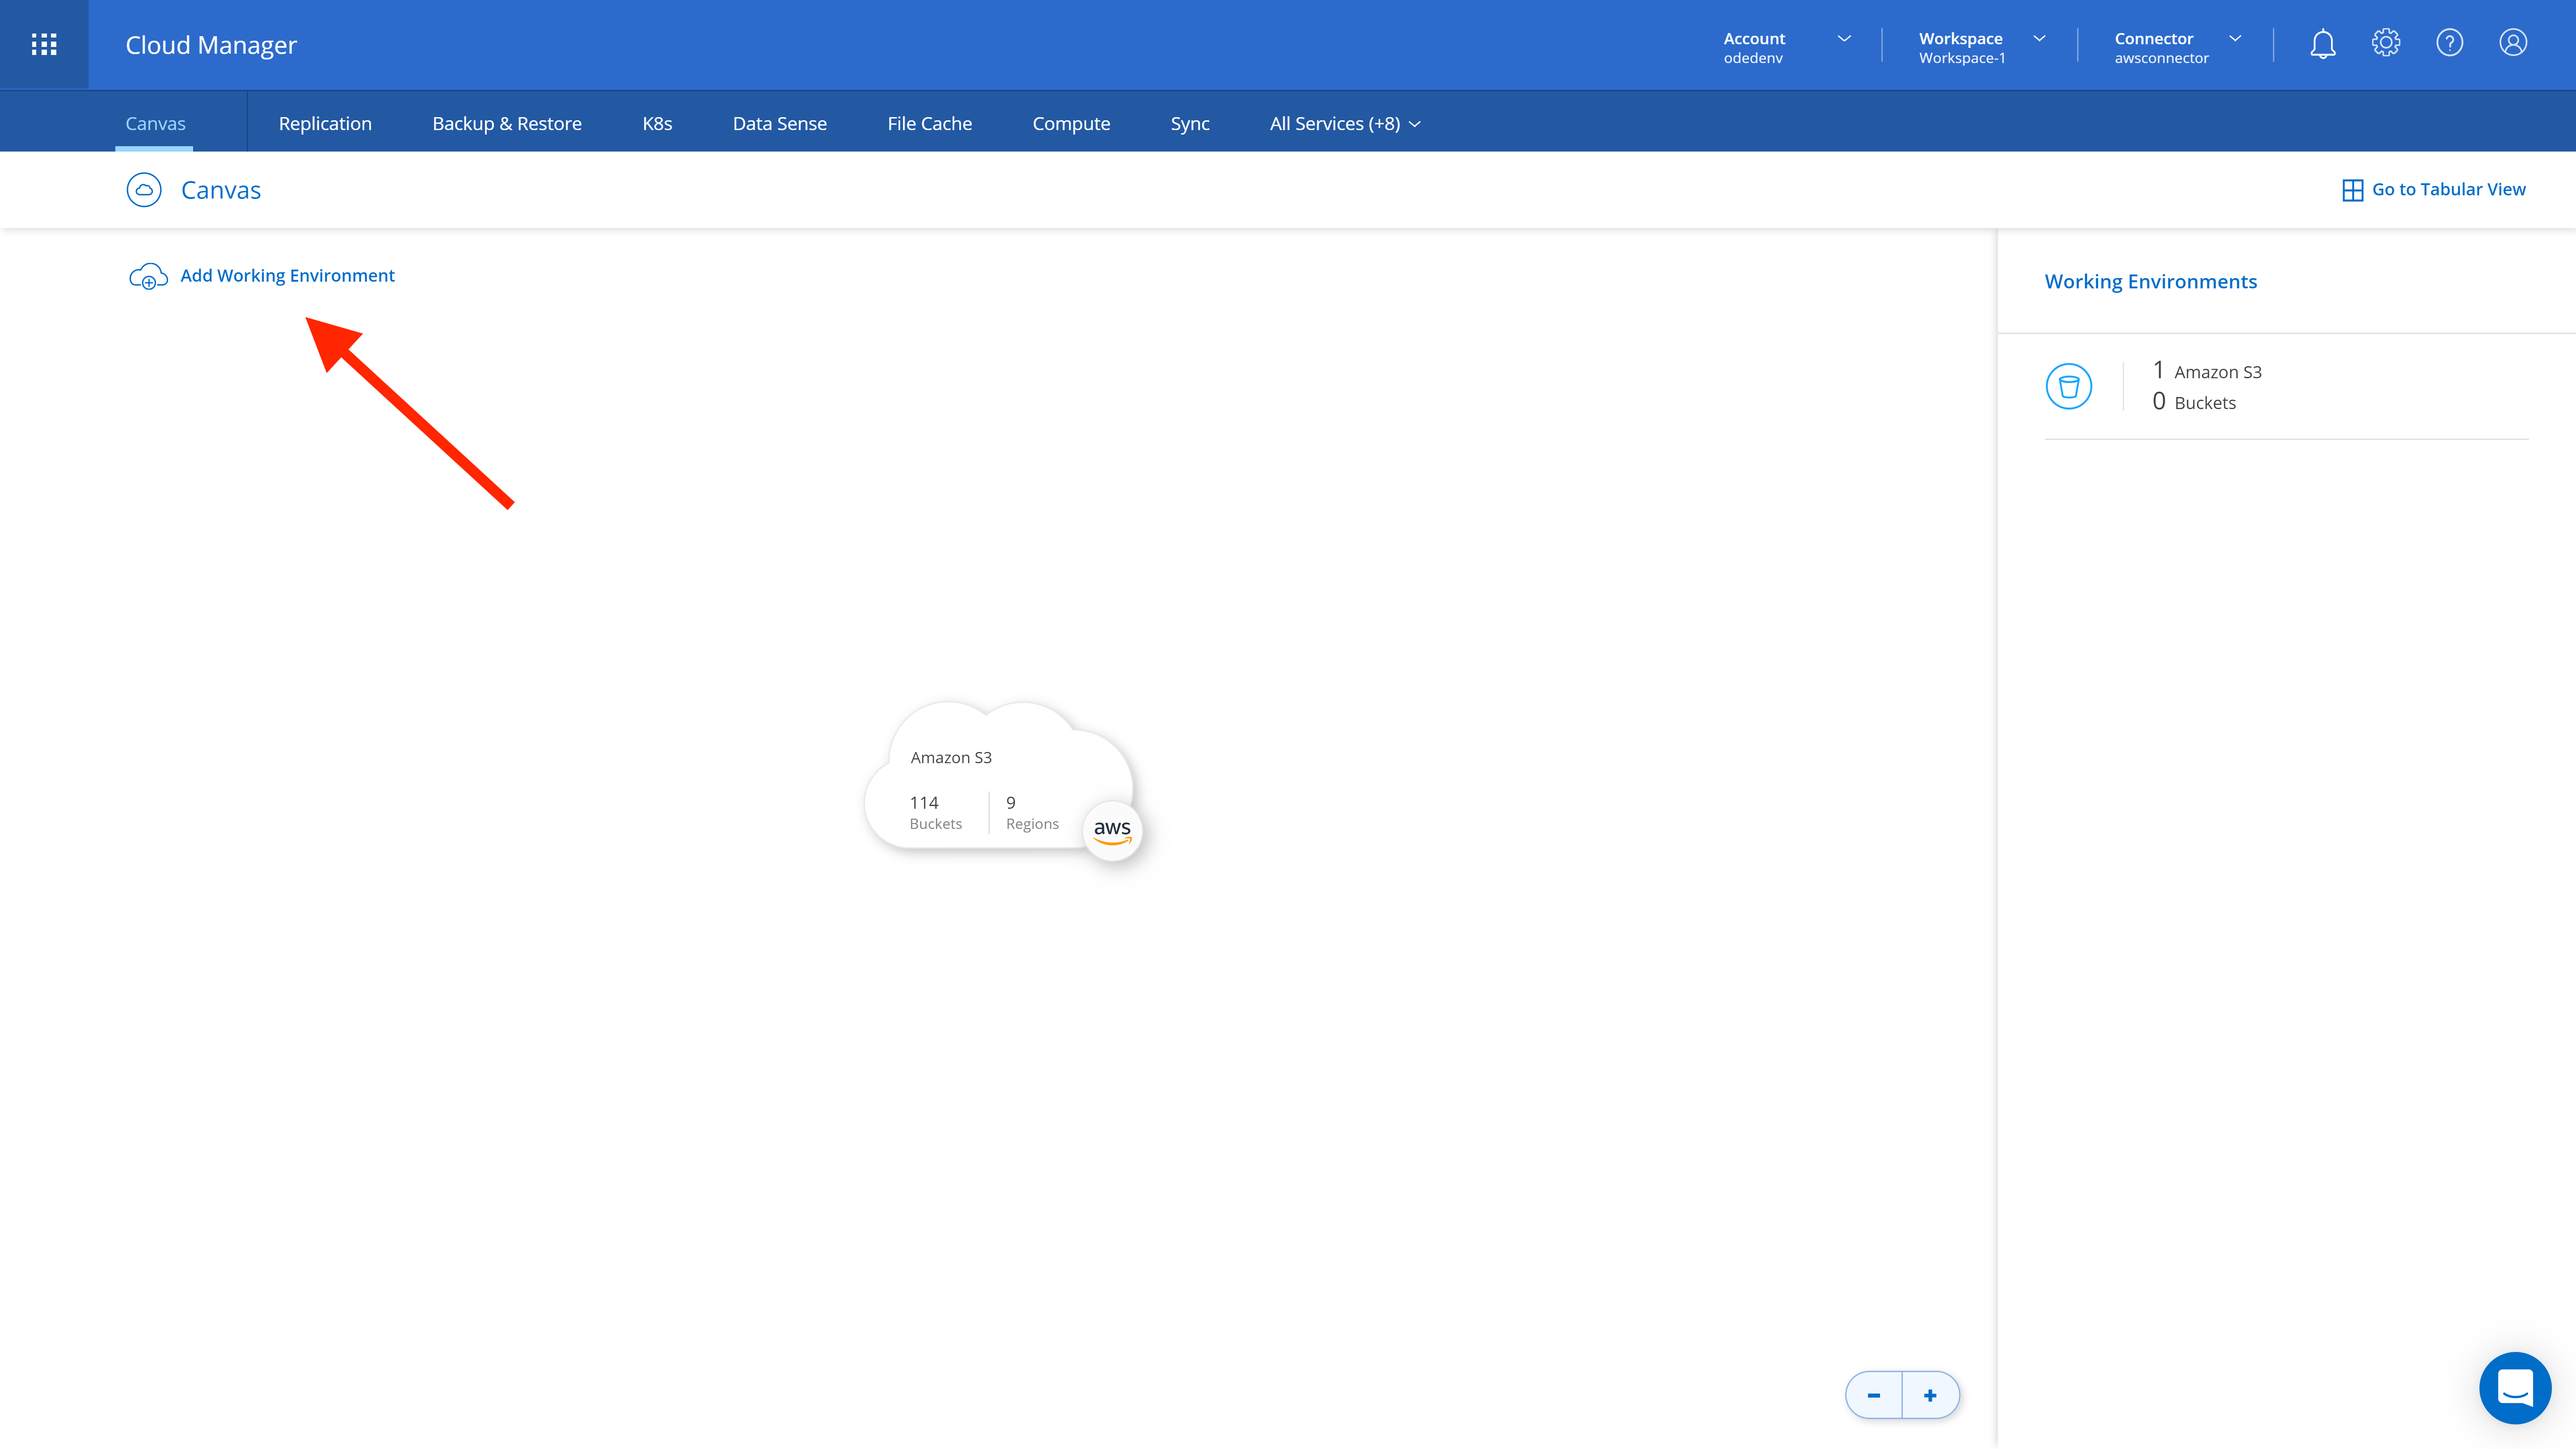 staging.cloudmanager.netapp.com_working-environments_view=clouds(AOC)